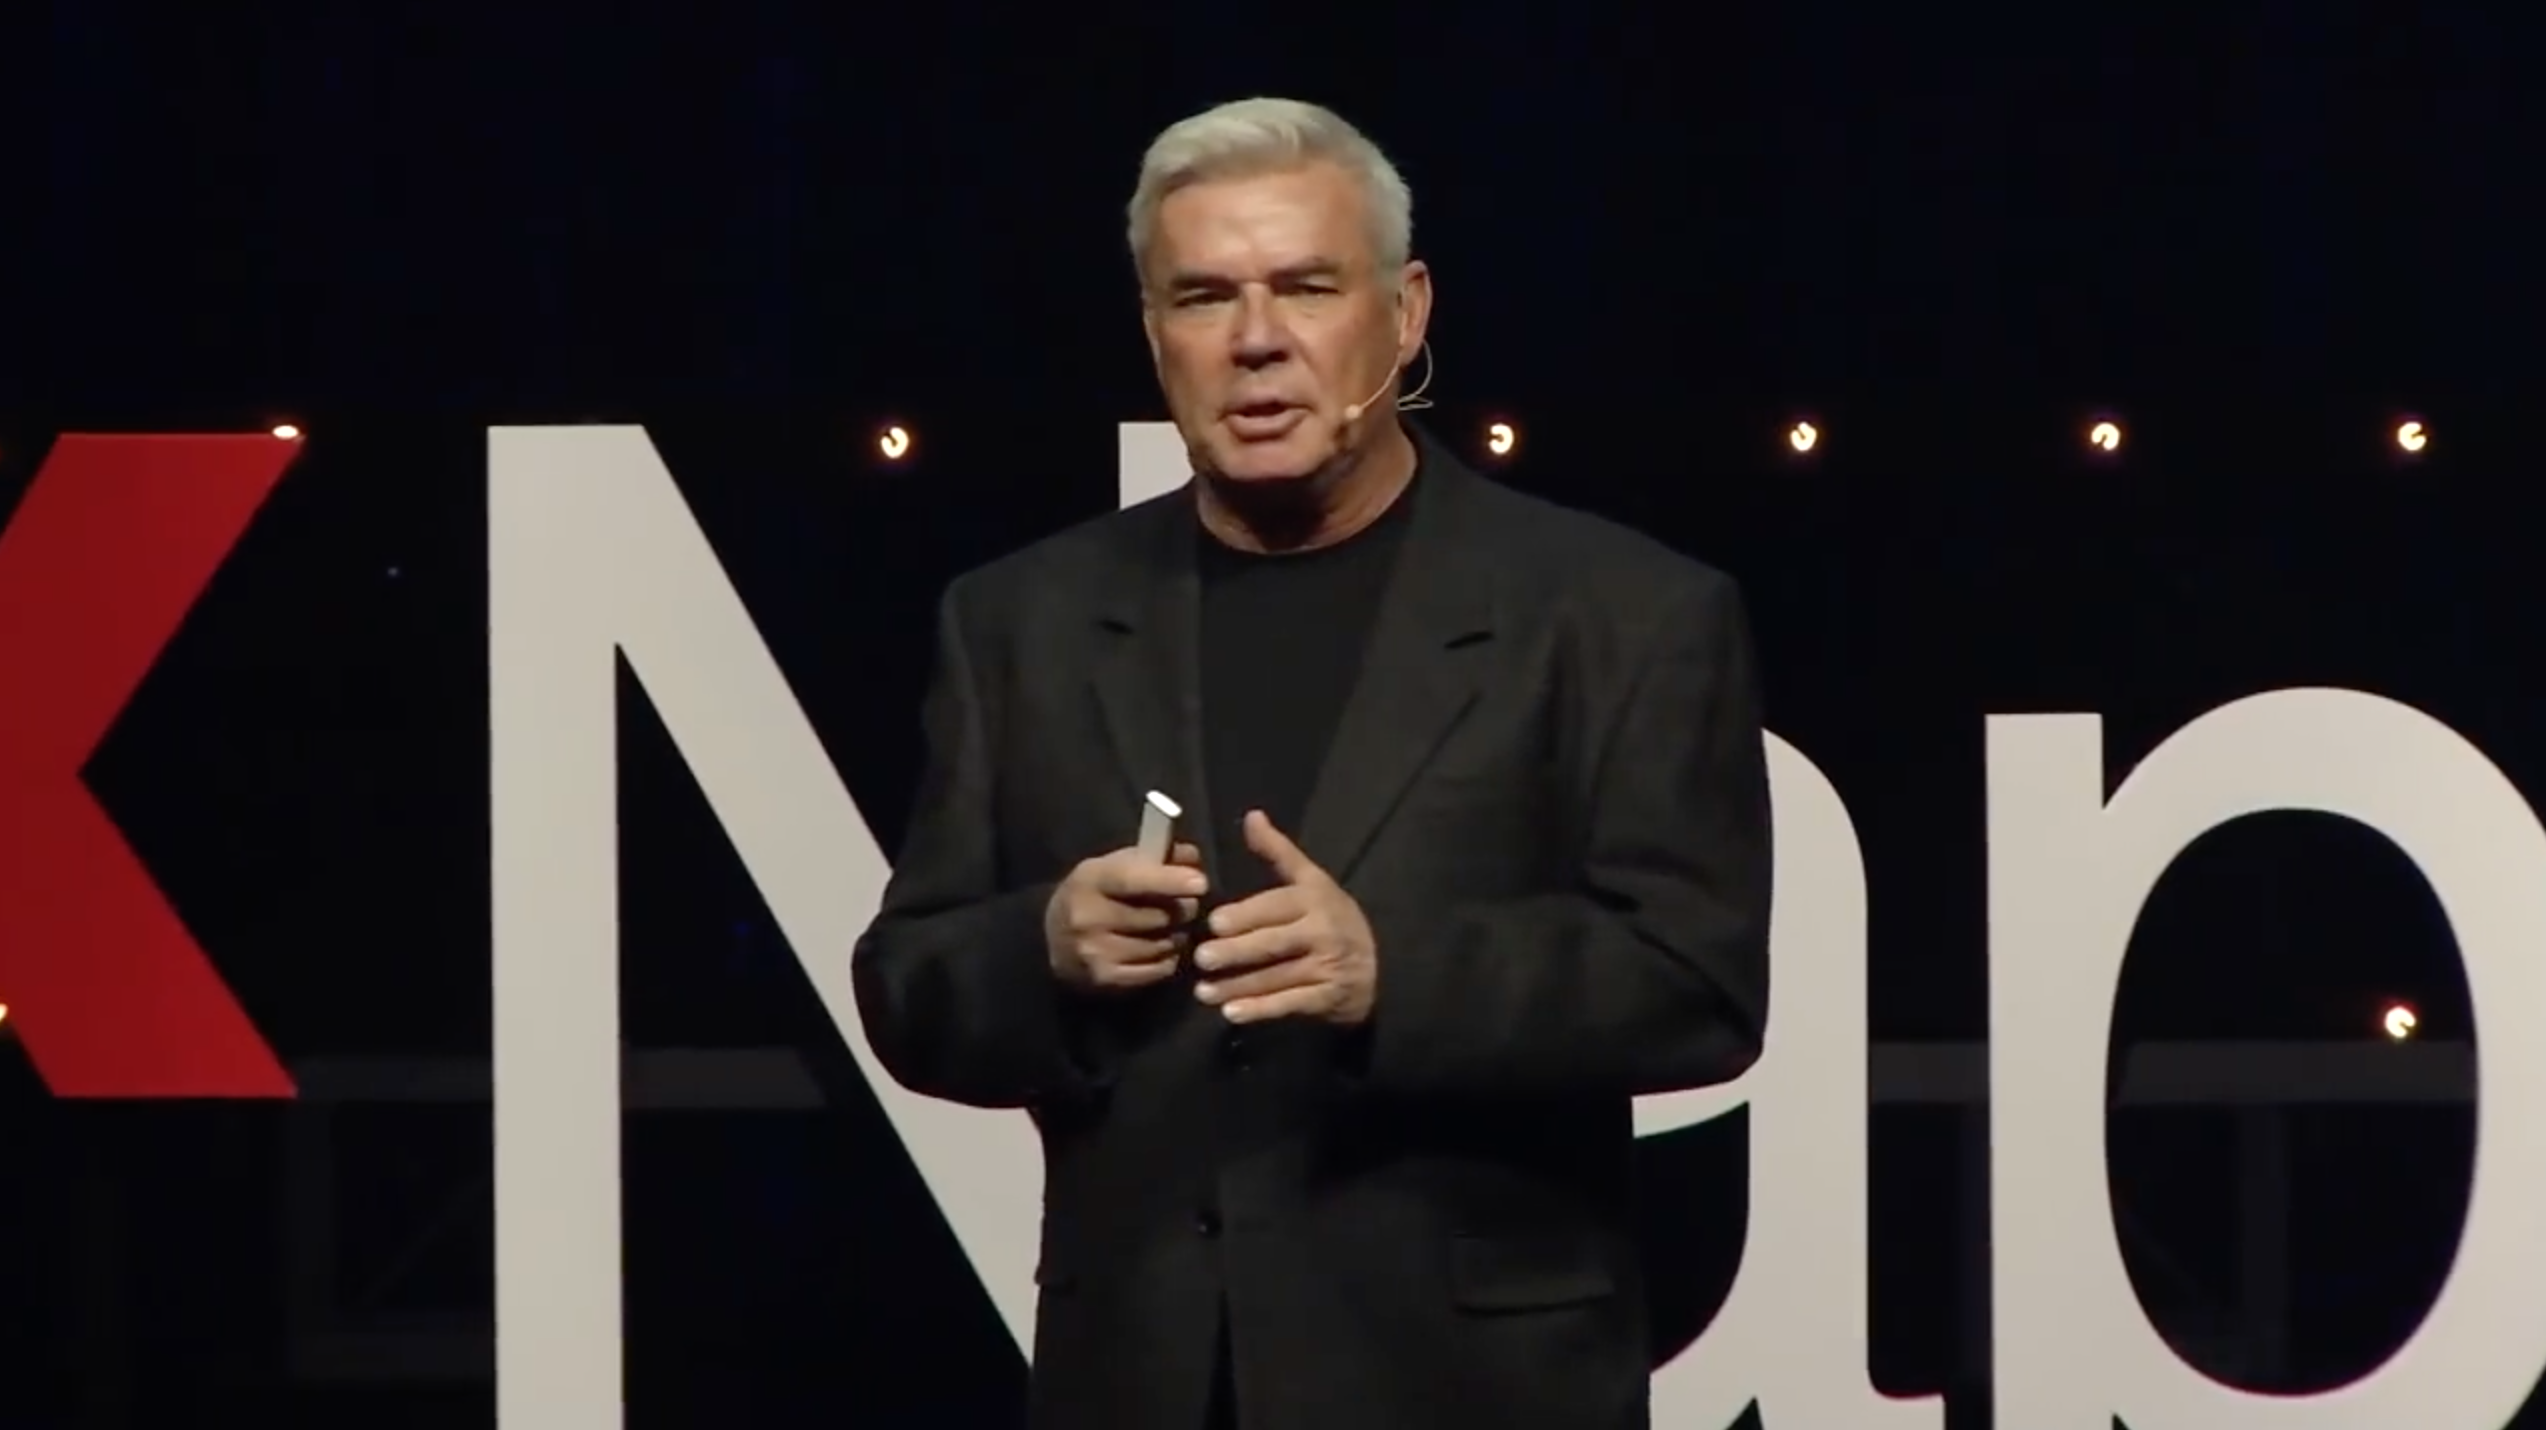 Eric Bischoff TED talk: WCW president discusses news media